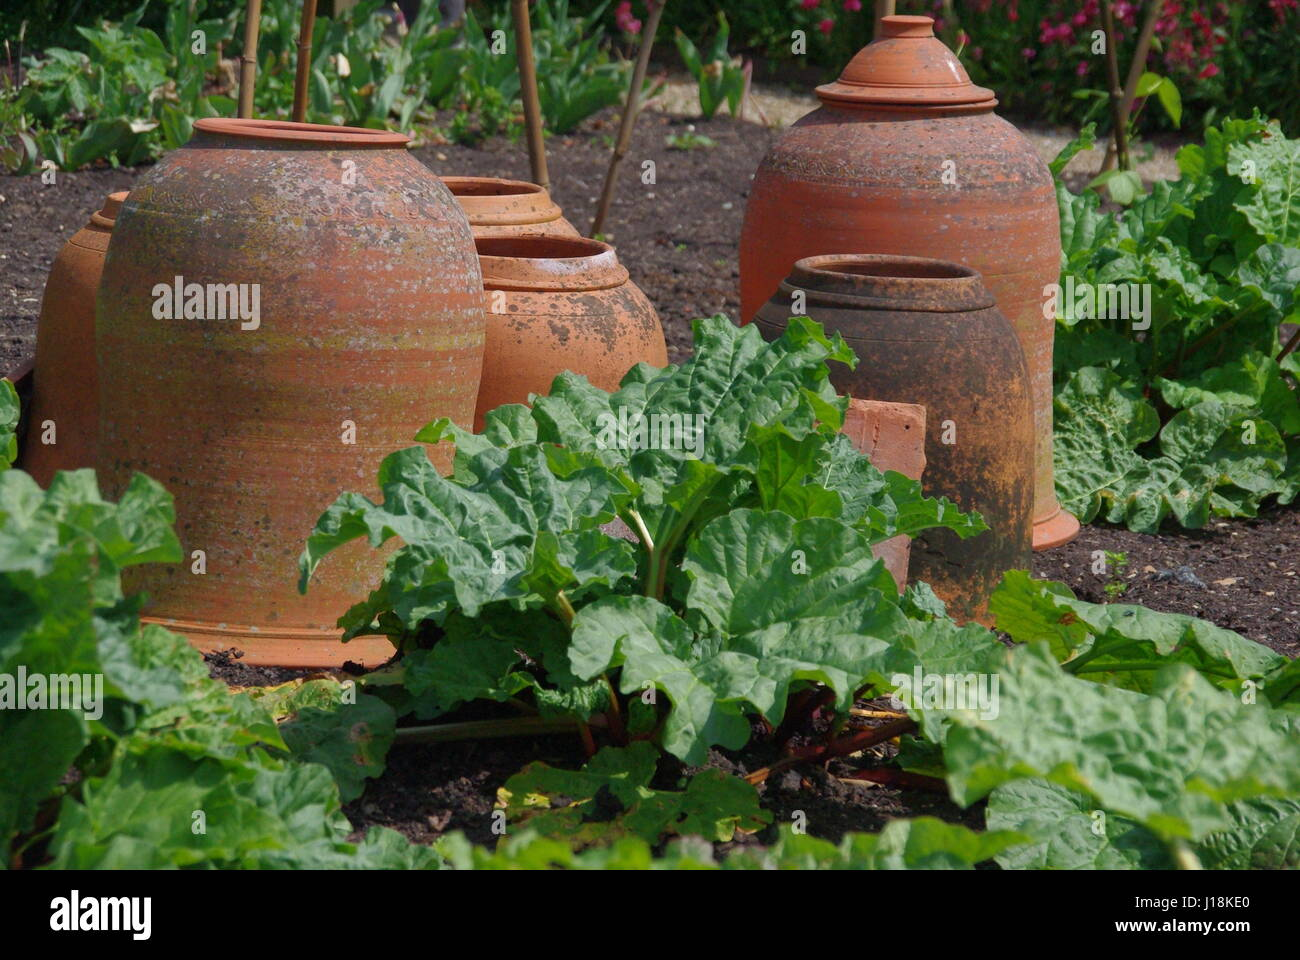 Rhubarb Forcing Pots in a Kitchen Garden - Stock Image